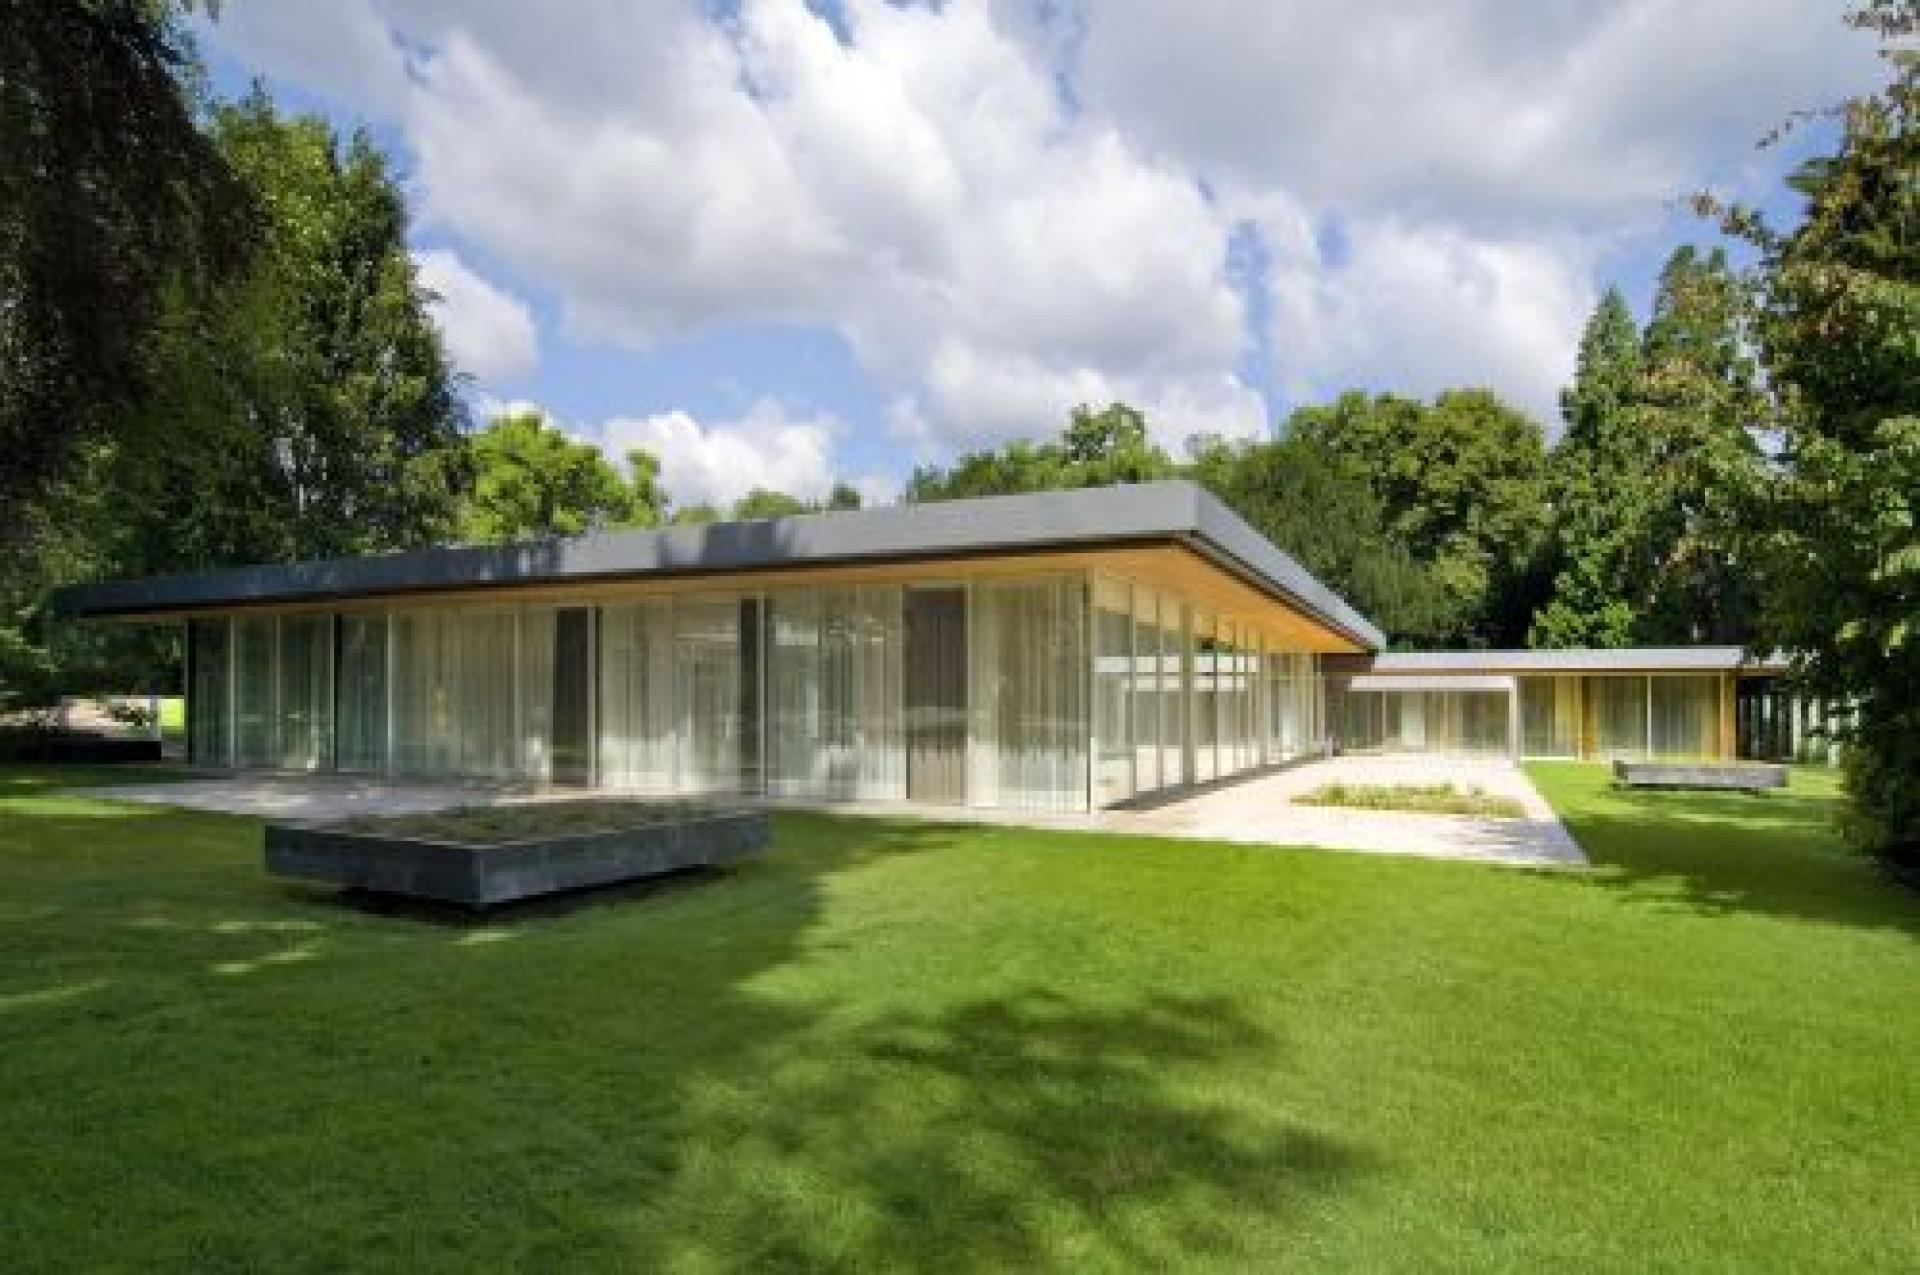 The bungalow of the Chancellor in Bonn.